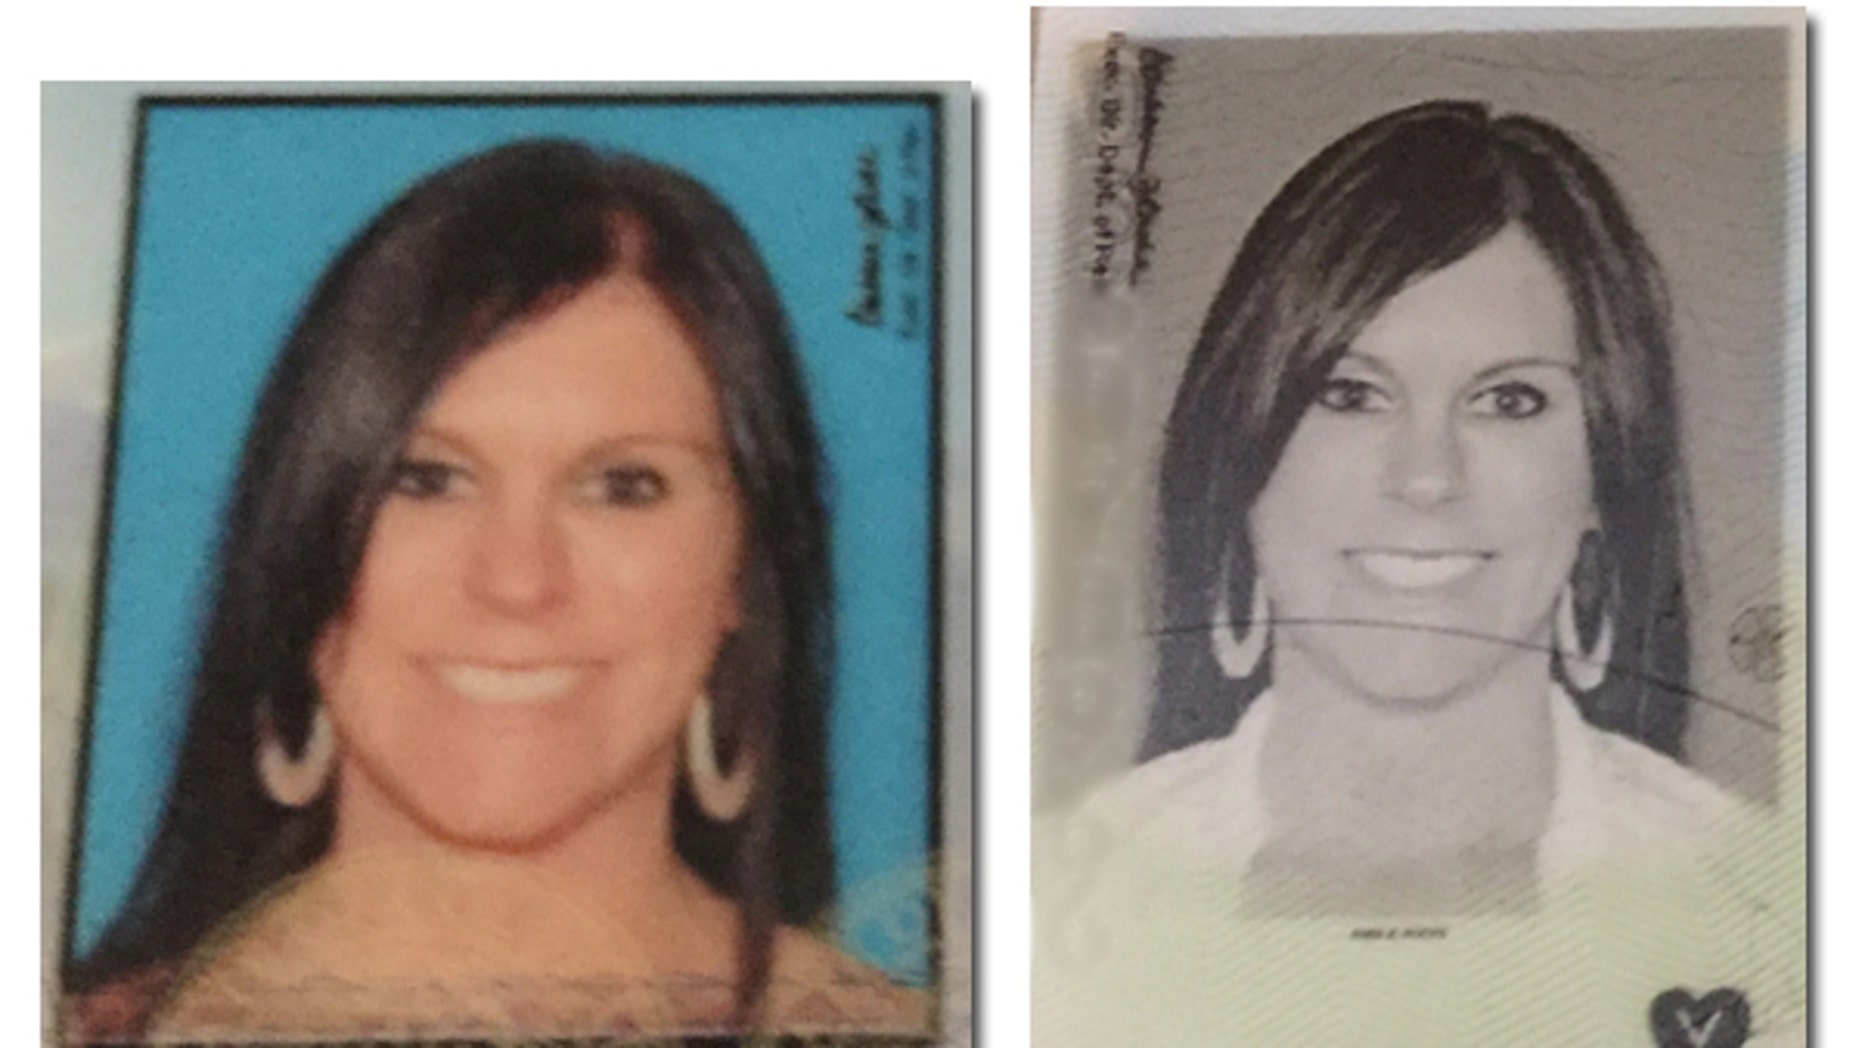 Rhea Ann Rocks of Fort Collins was shocked to find that when she received her new license in the mail after renewing online, that she was wearing what appeared to be a collared white shirt even though she was wear different clothing when she originally took the picture.